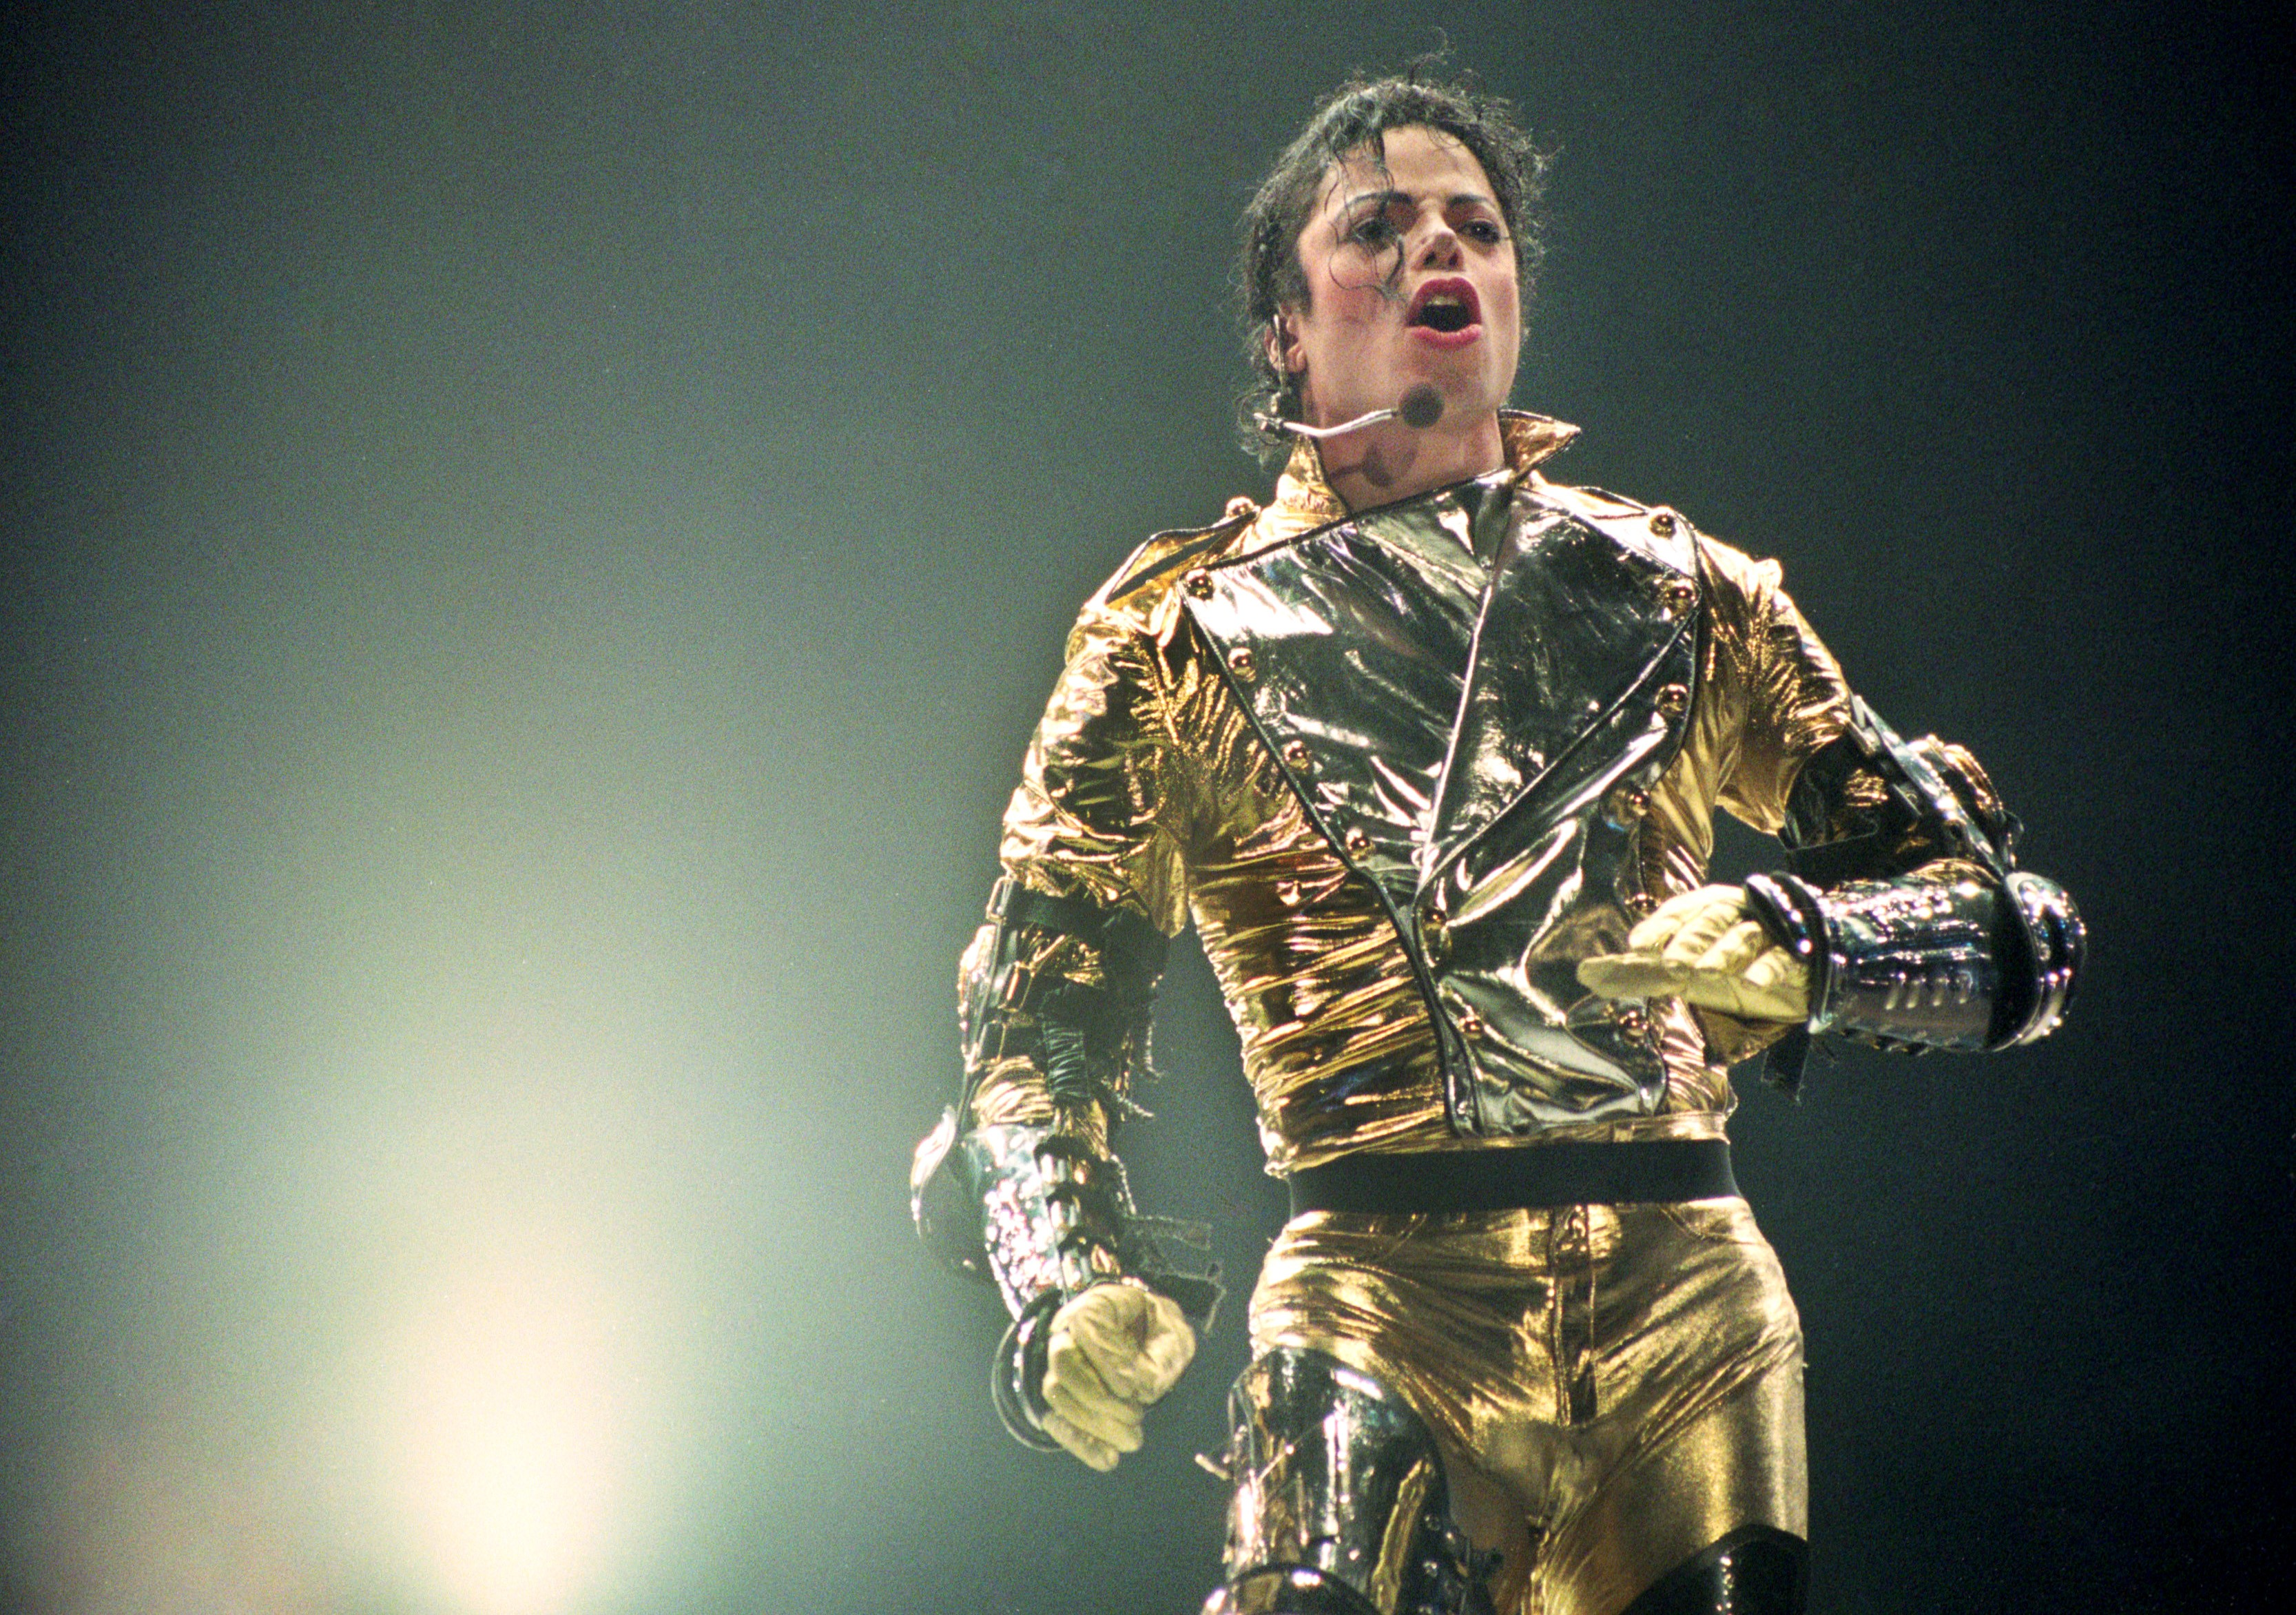 Michael Jackson, o Rei do Pop - e do estilo (Foto: Getty Images/ Phil Walter)